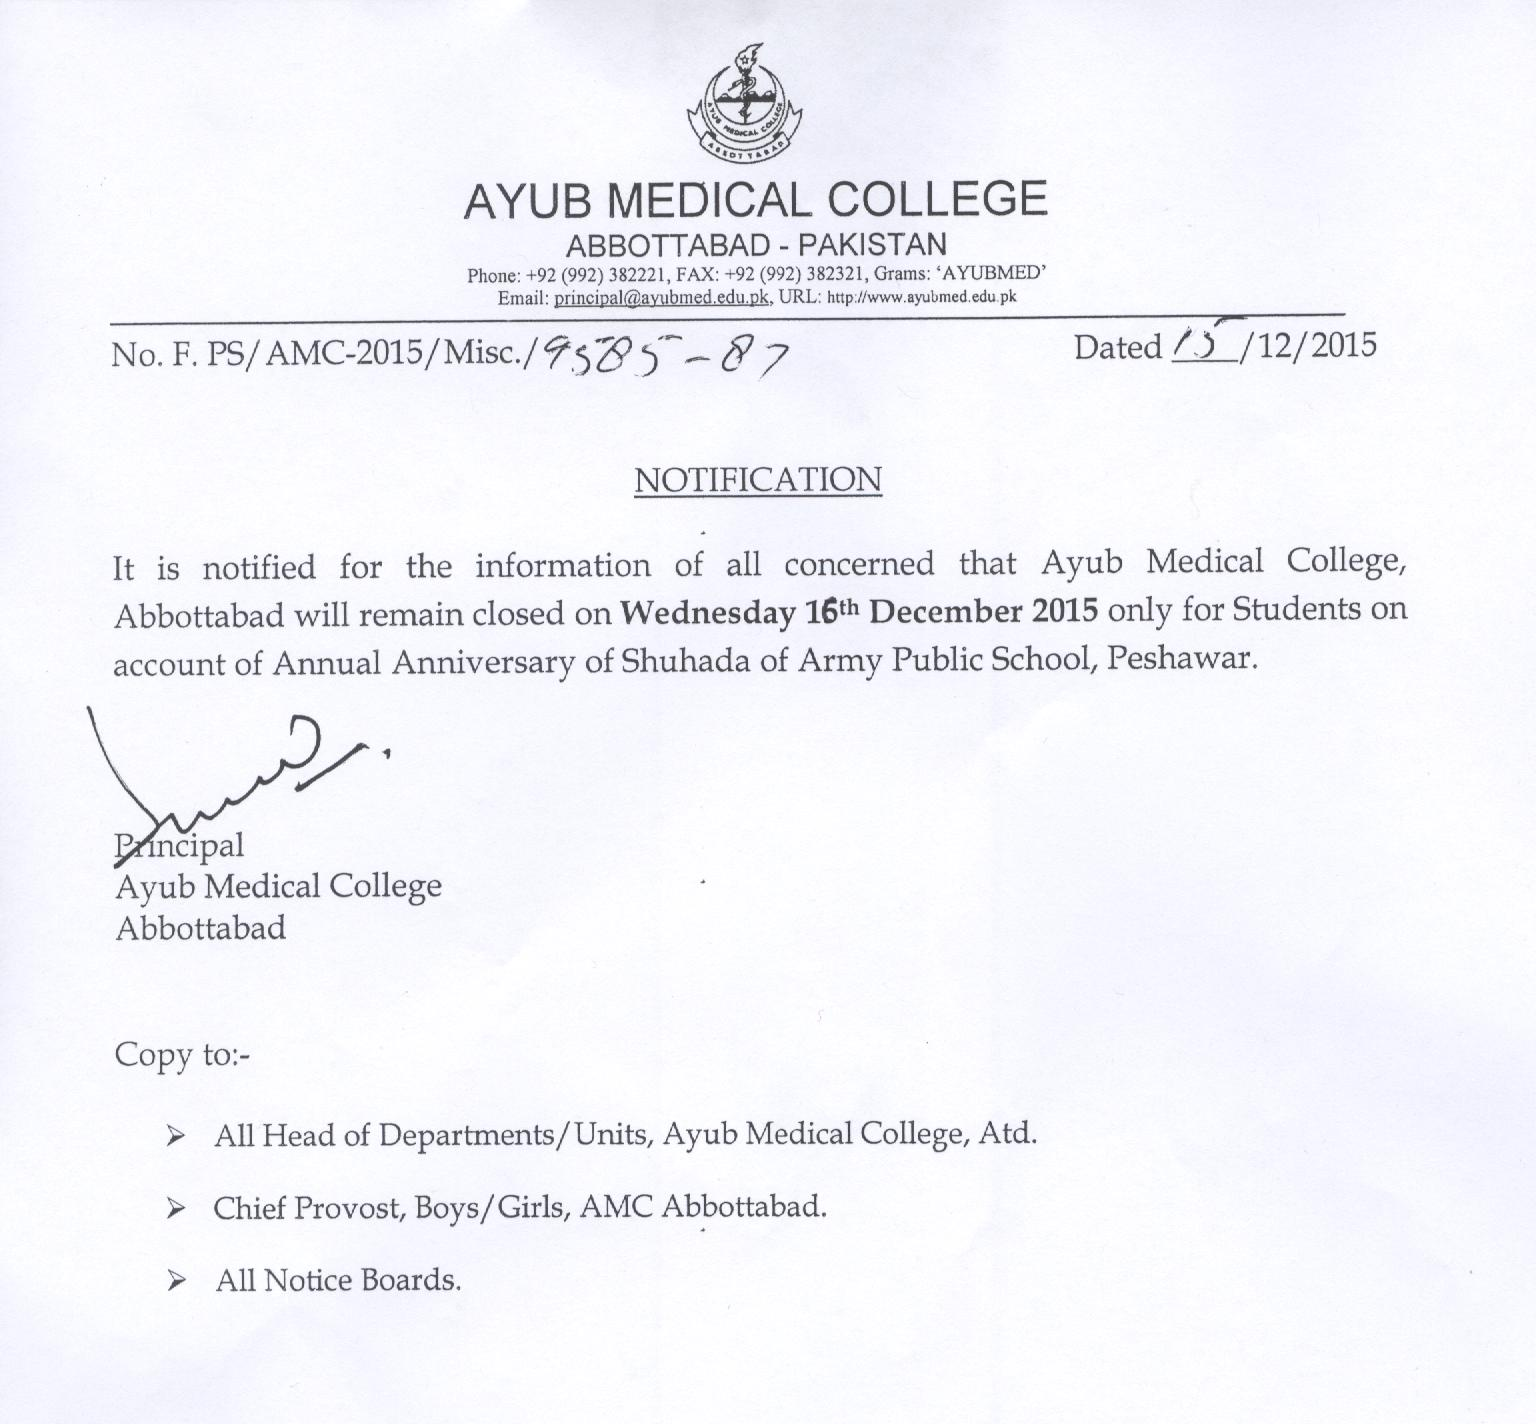 College will remain closed on 16-12-2015